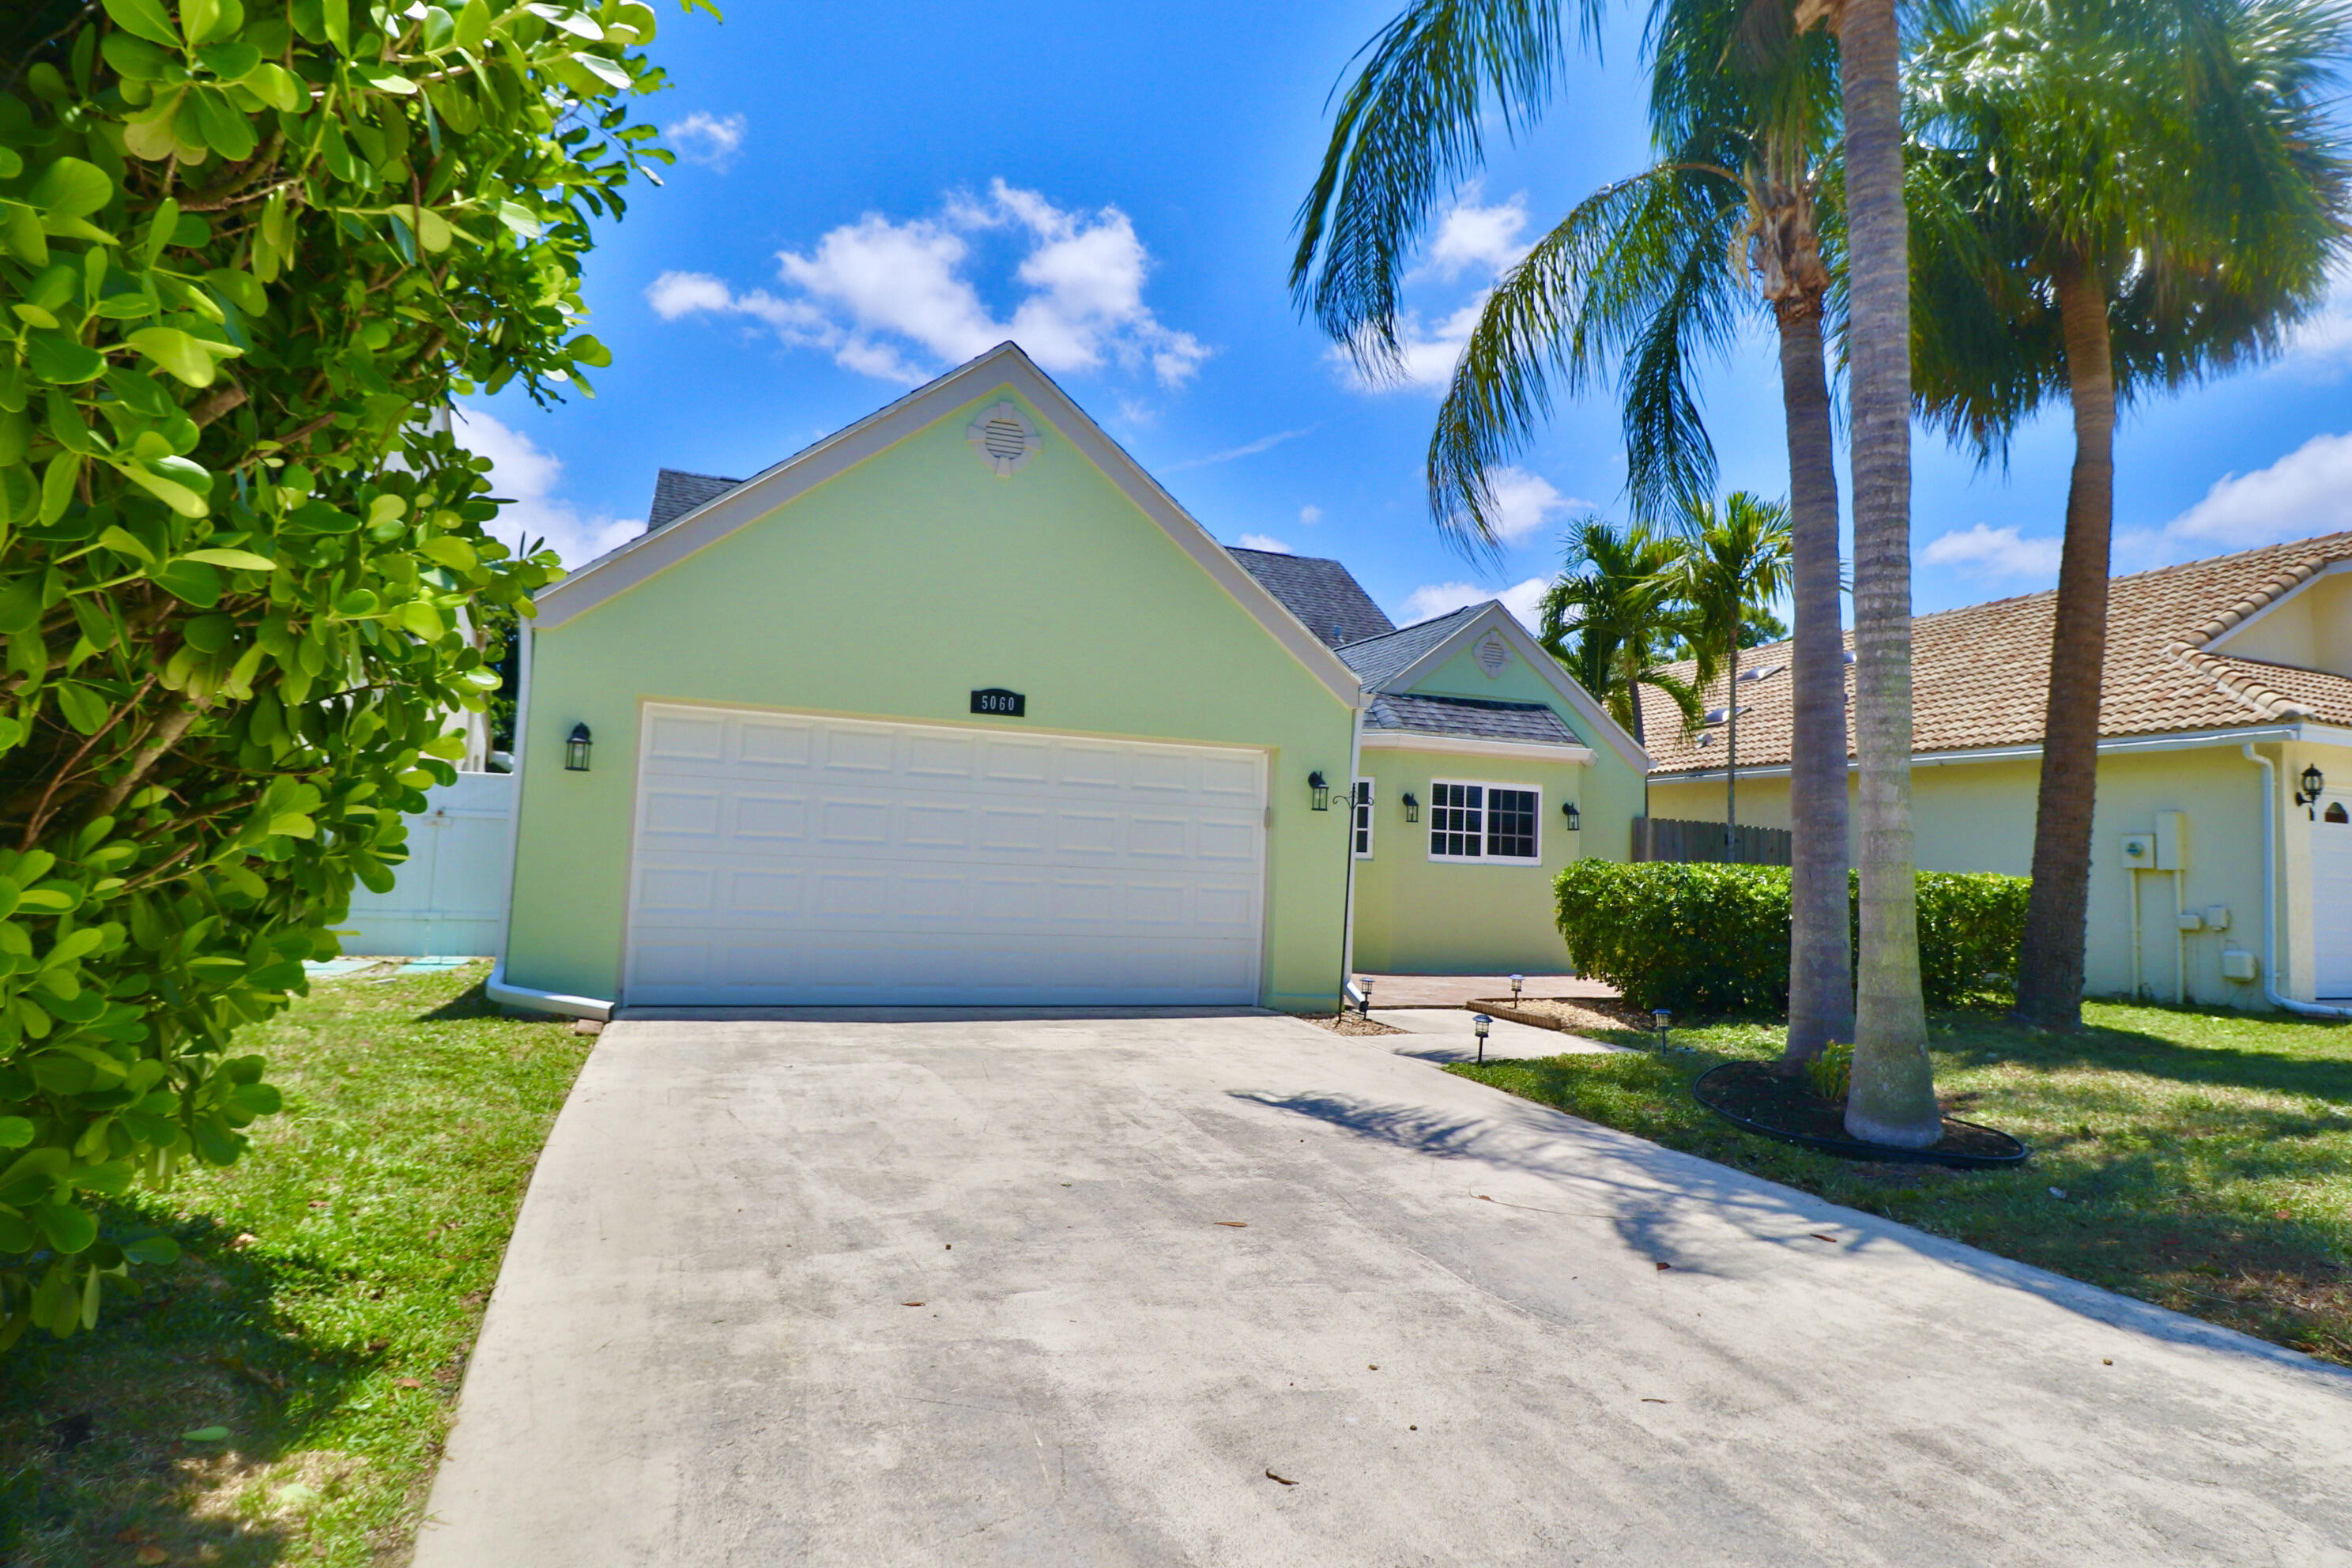 5060  Willow Pond Road  For Sale 10719058, FL